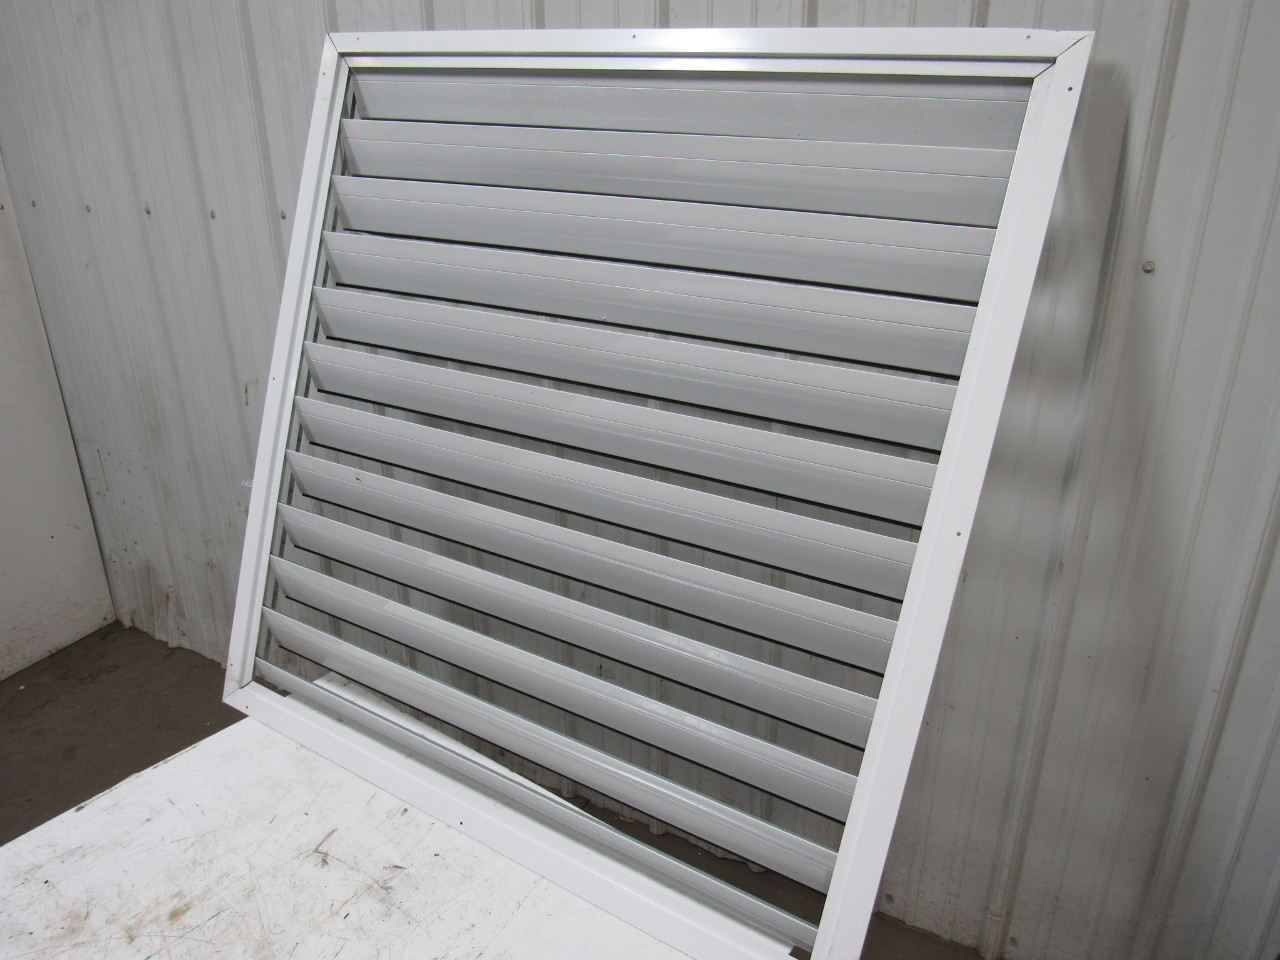 Dayton 3c243a 48 Ceiling Shutter White New W Repairable